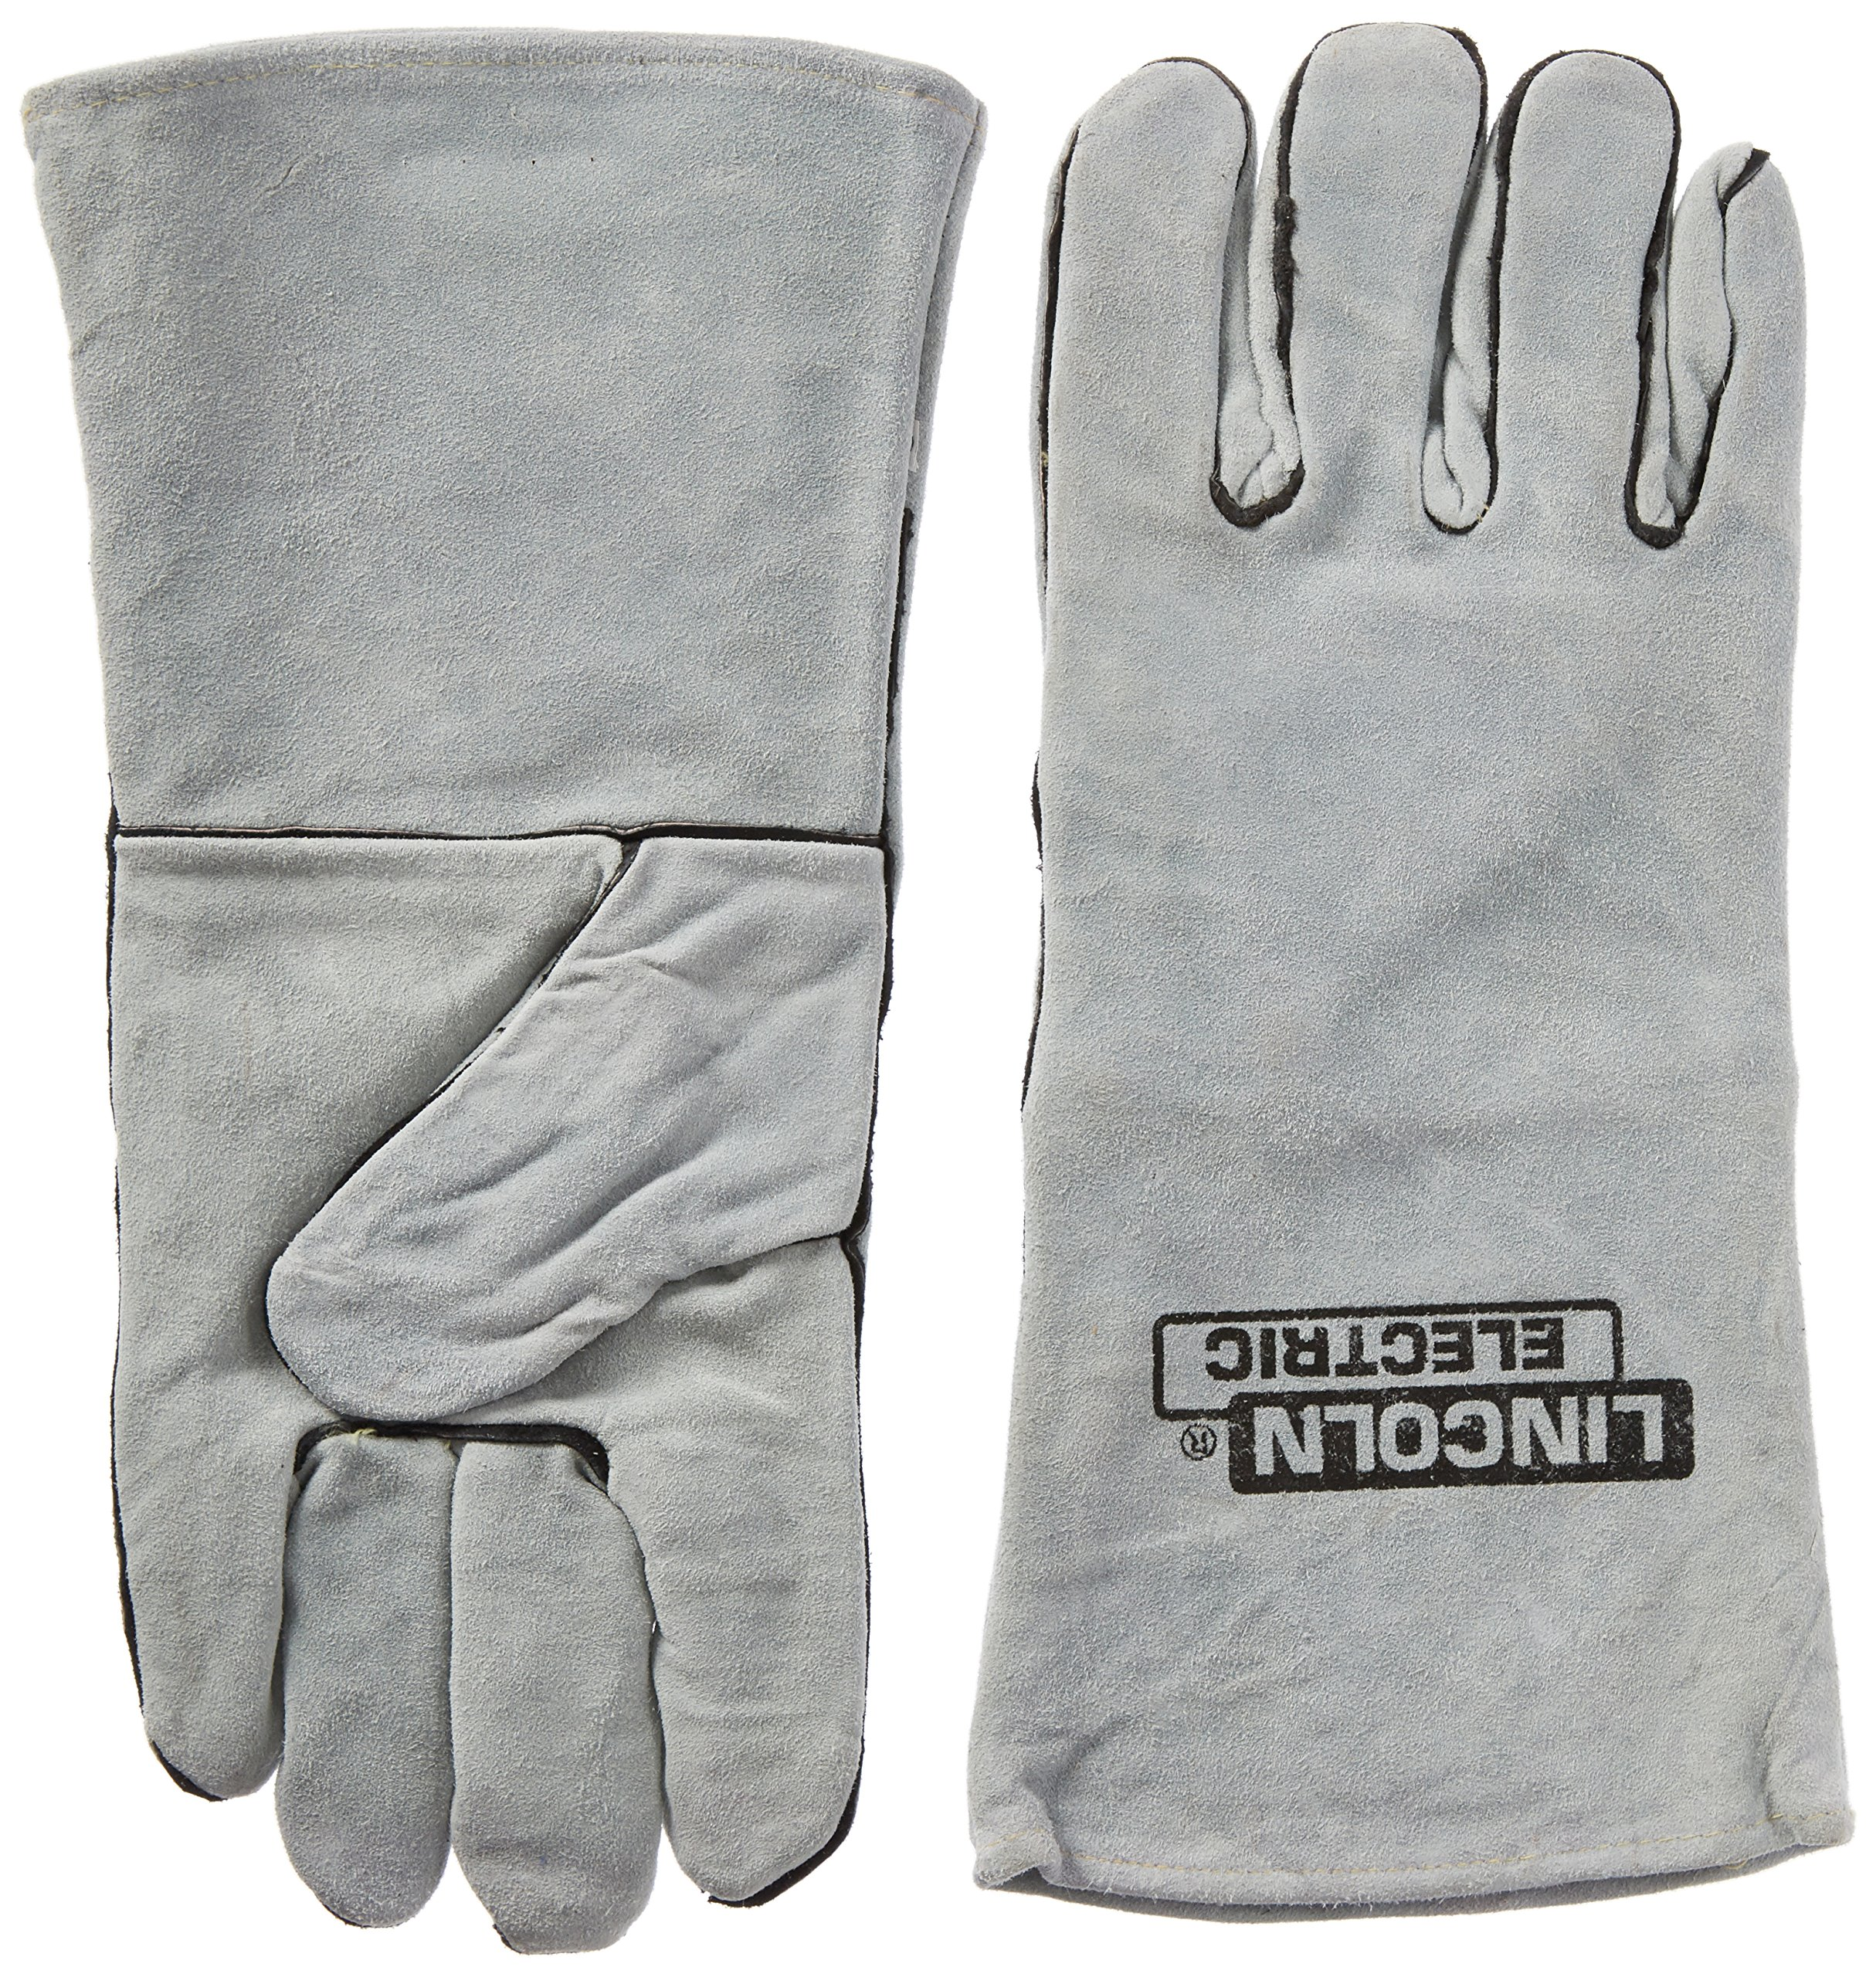 Lincoln Electric KH641 Leather Welding Gloves, One Size, Grey